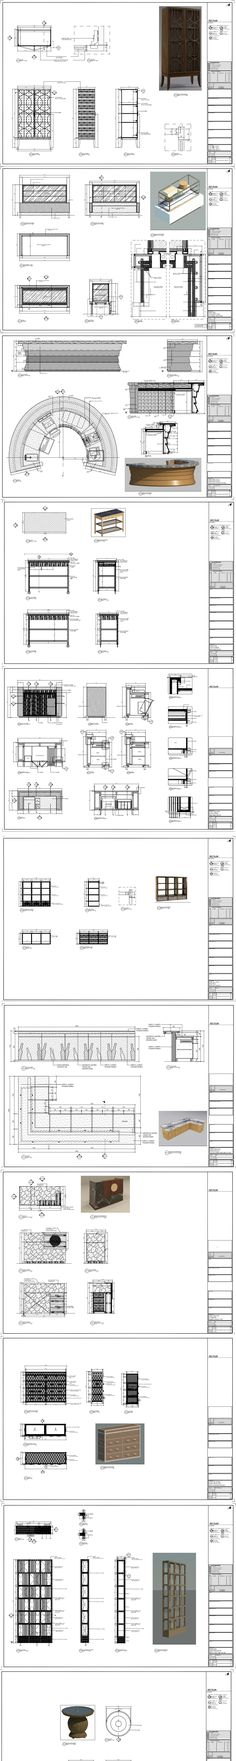 We have extensive experience in providing in Our have understood all the mandatory information regarding the specifications of components to contractors and sub-trades so that they can assemble products. Rebar Detailing, Engineers, Construction, Drawings, Shopping, Products, Building, Sketches, Drawing